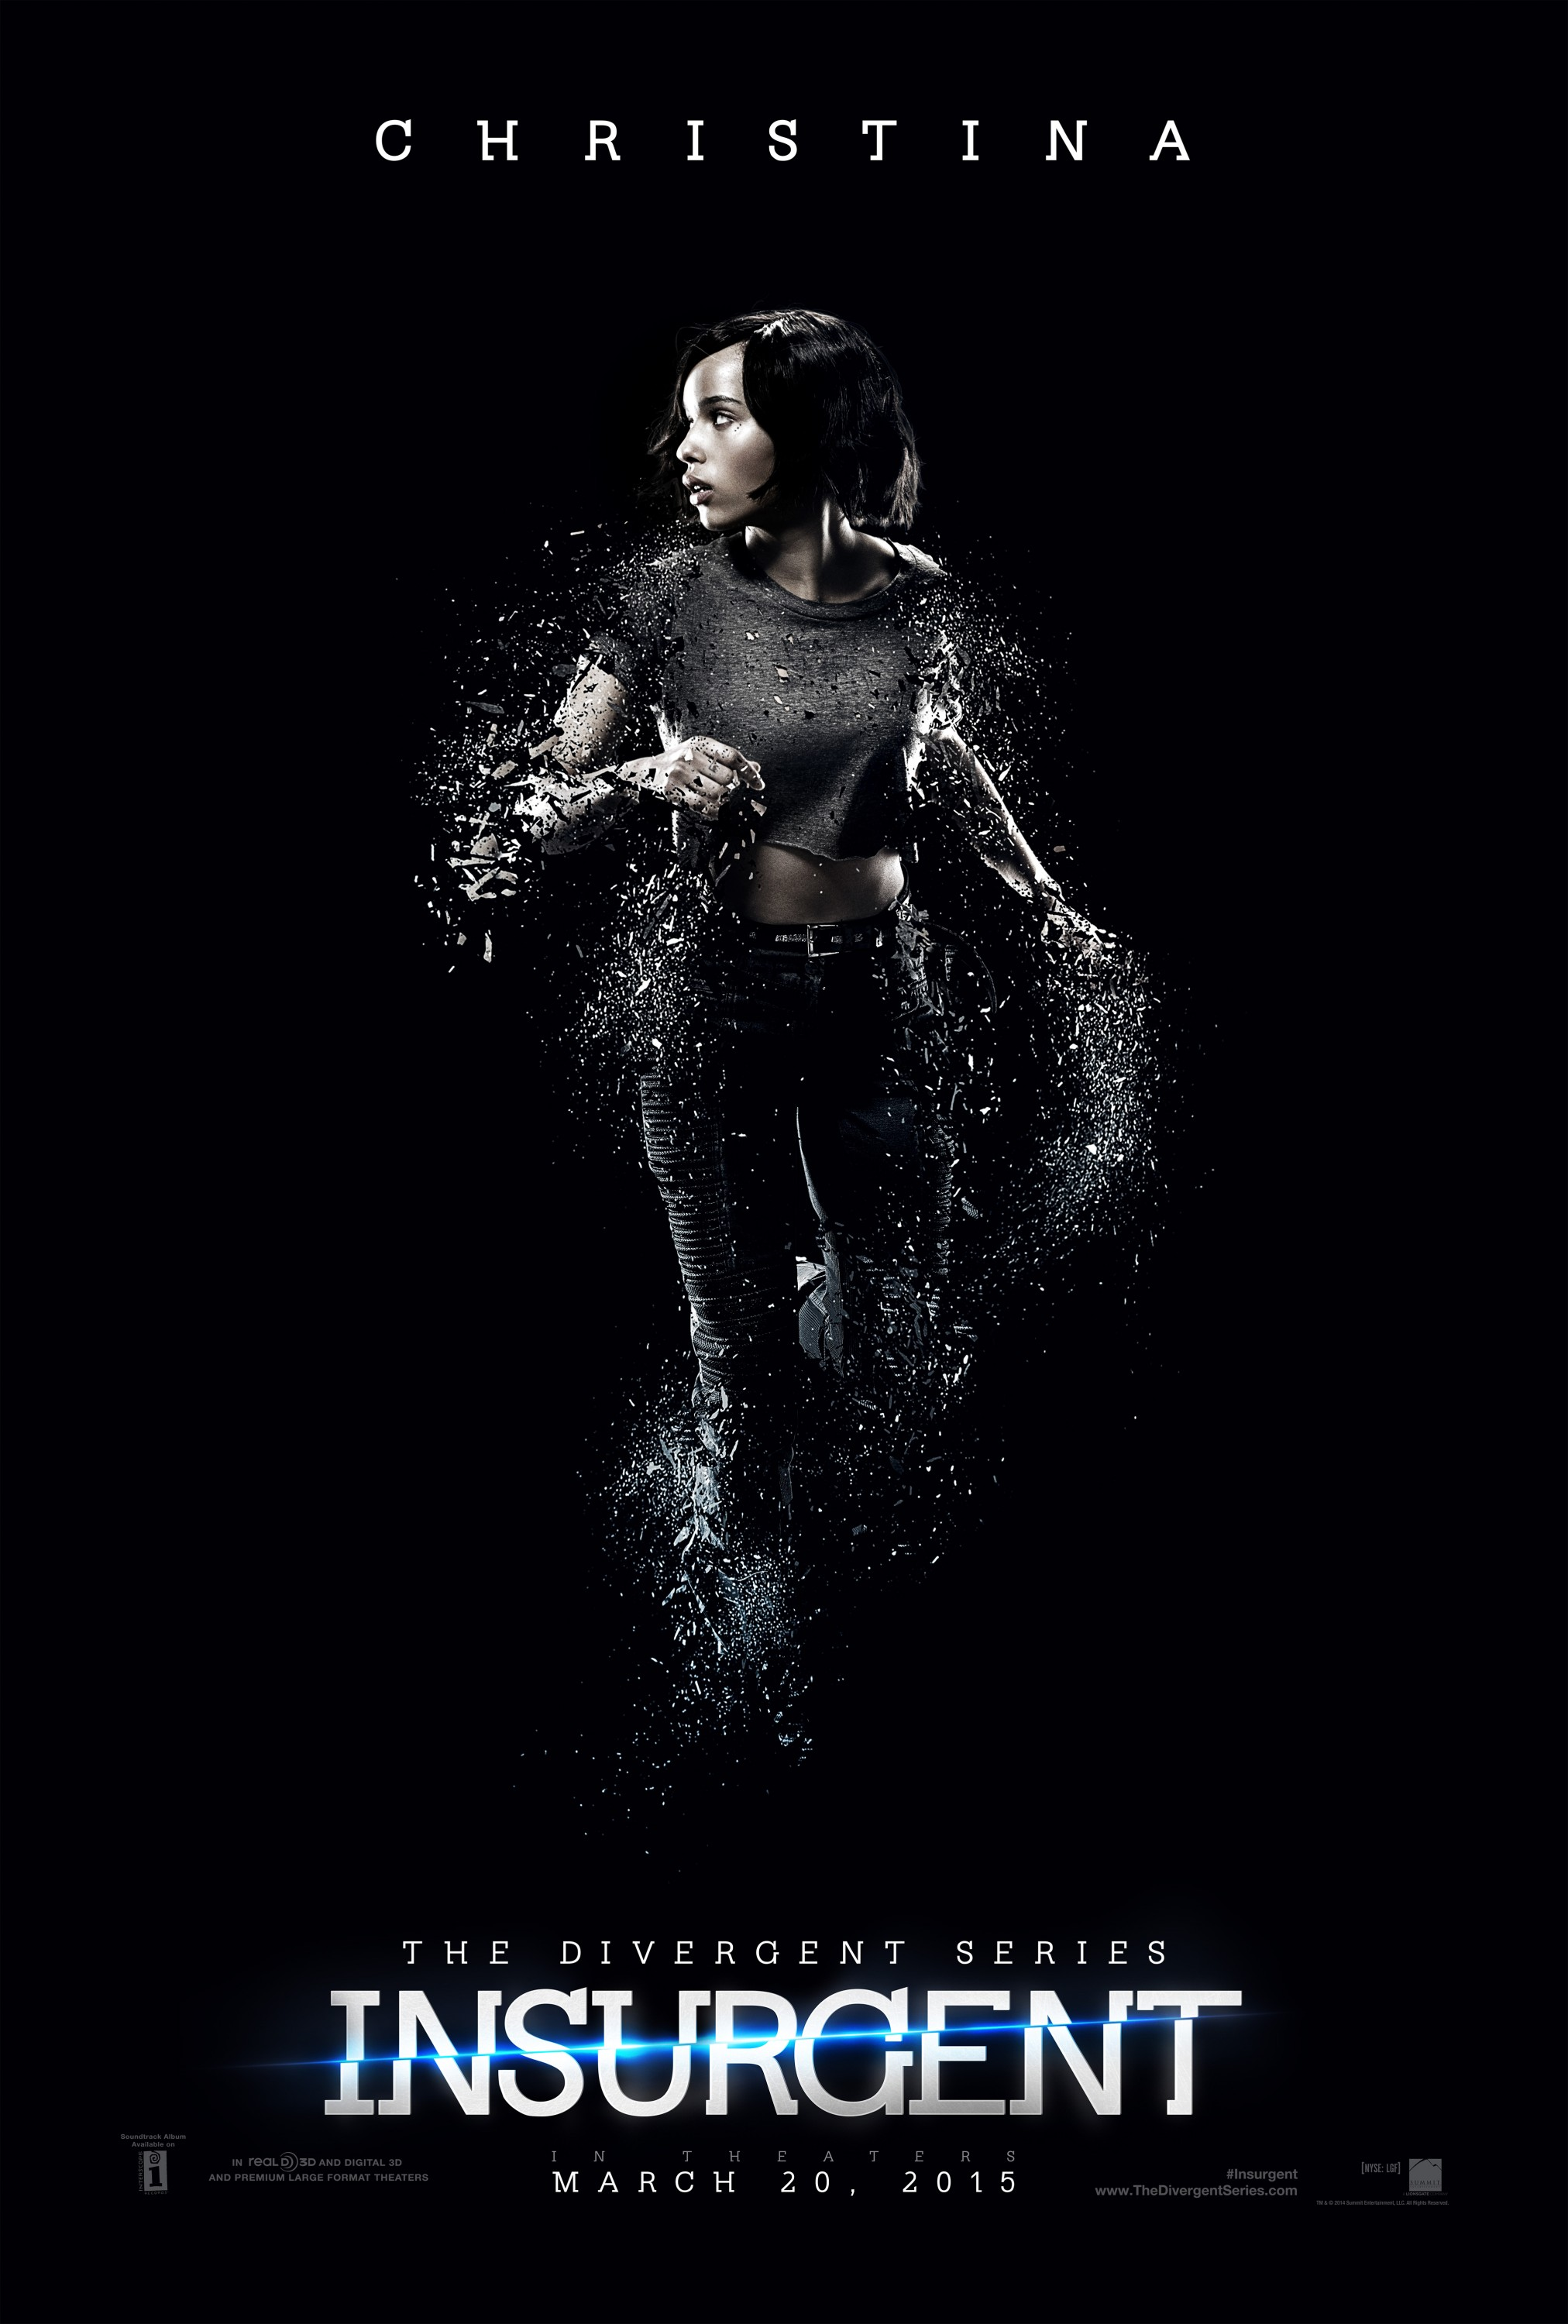 Insurgent-Official Poster XXLG-30OUTUBRO2014-05